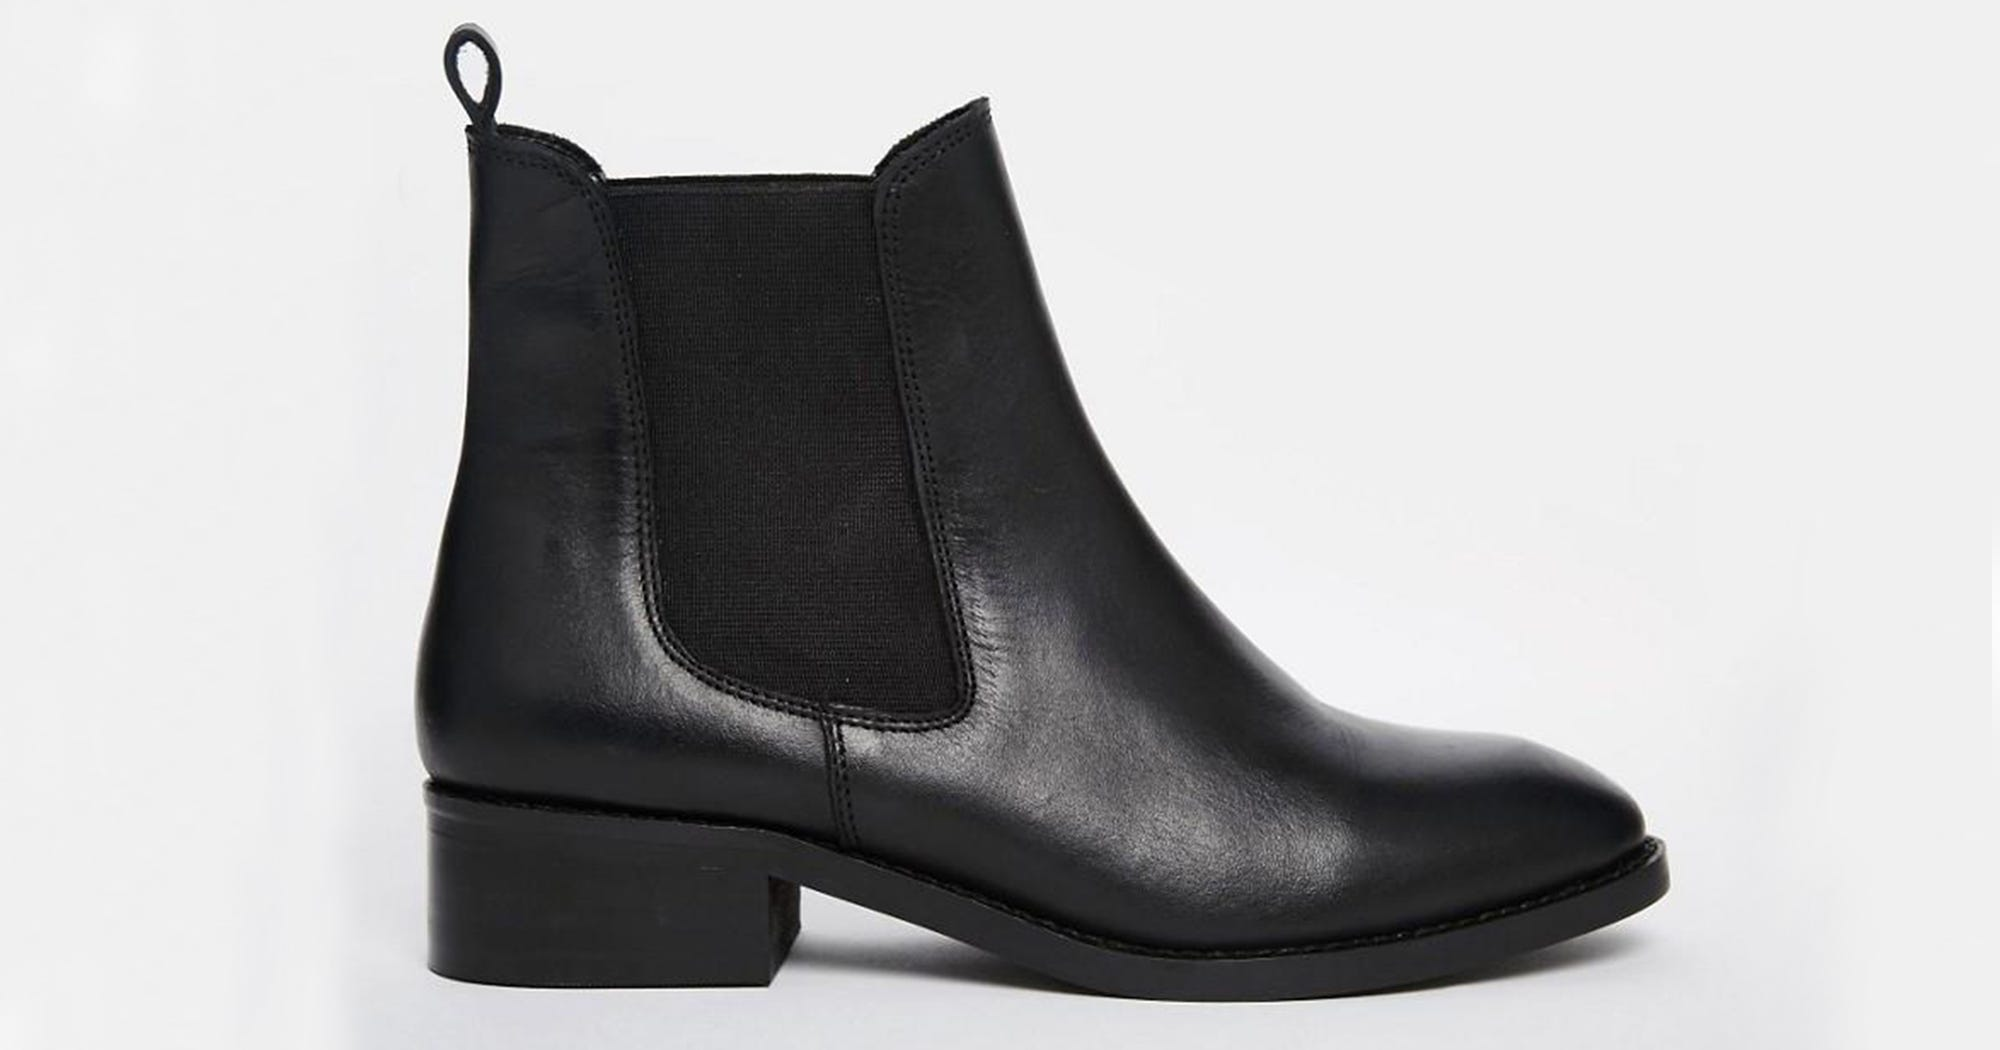 73496933aee ASOS Leather Chelsea Black Ankle Boots Review